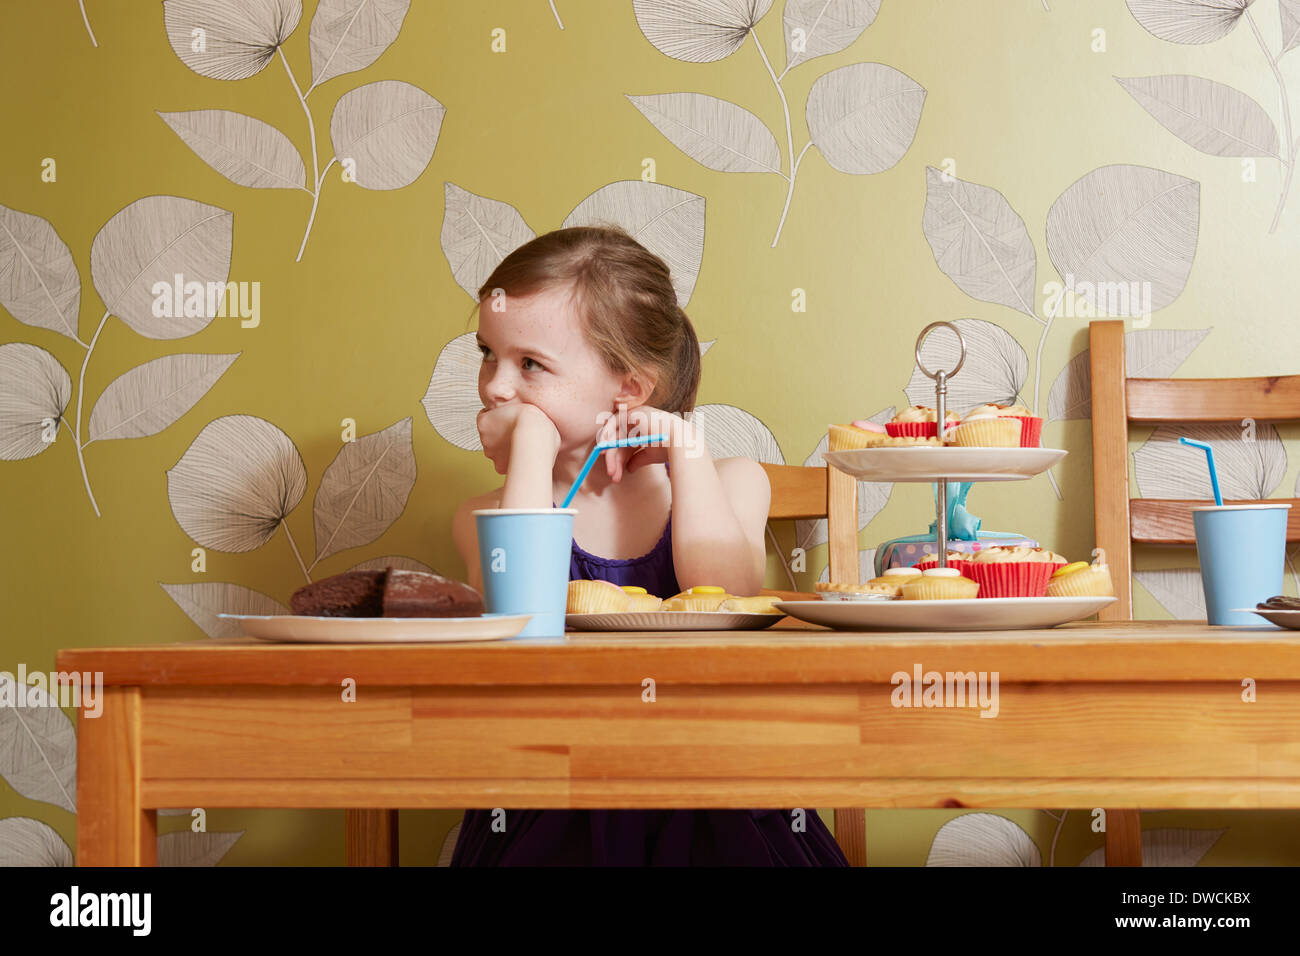 Bored looking girl at table with party food - Stock Image